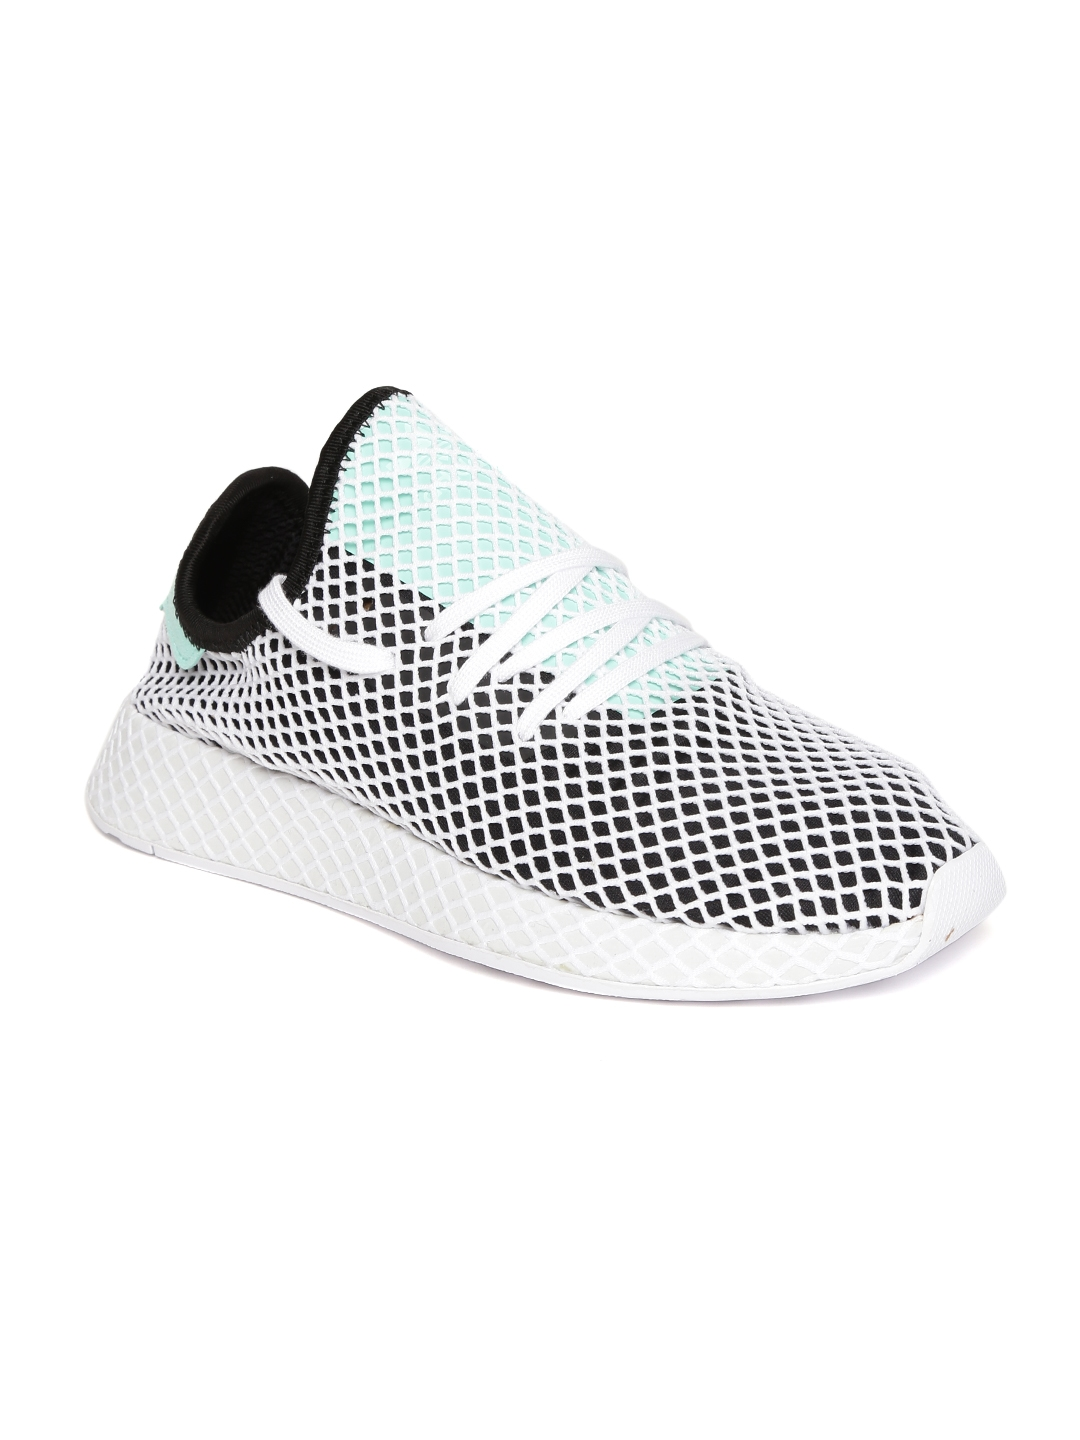 ADIDAS Originals Men White   Black Deerupt Runner Patterned Sneakers 8b4b1c569